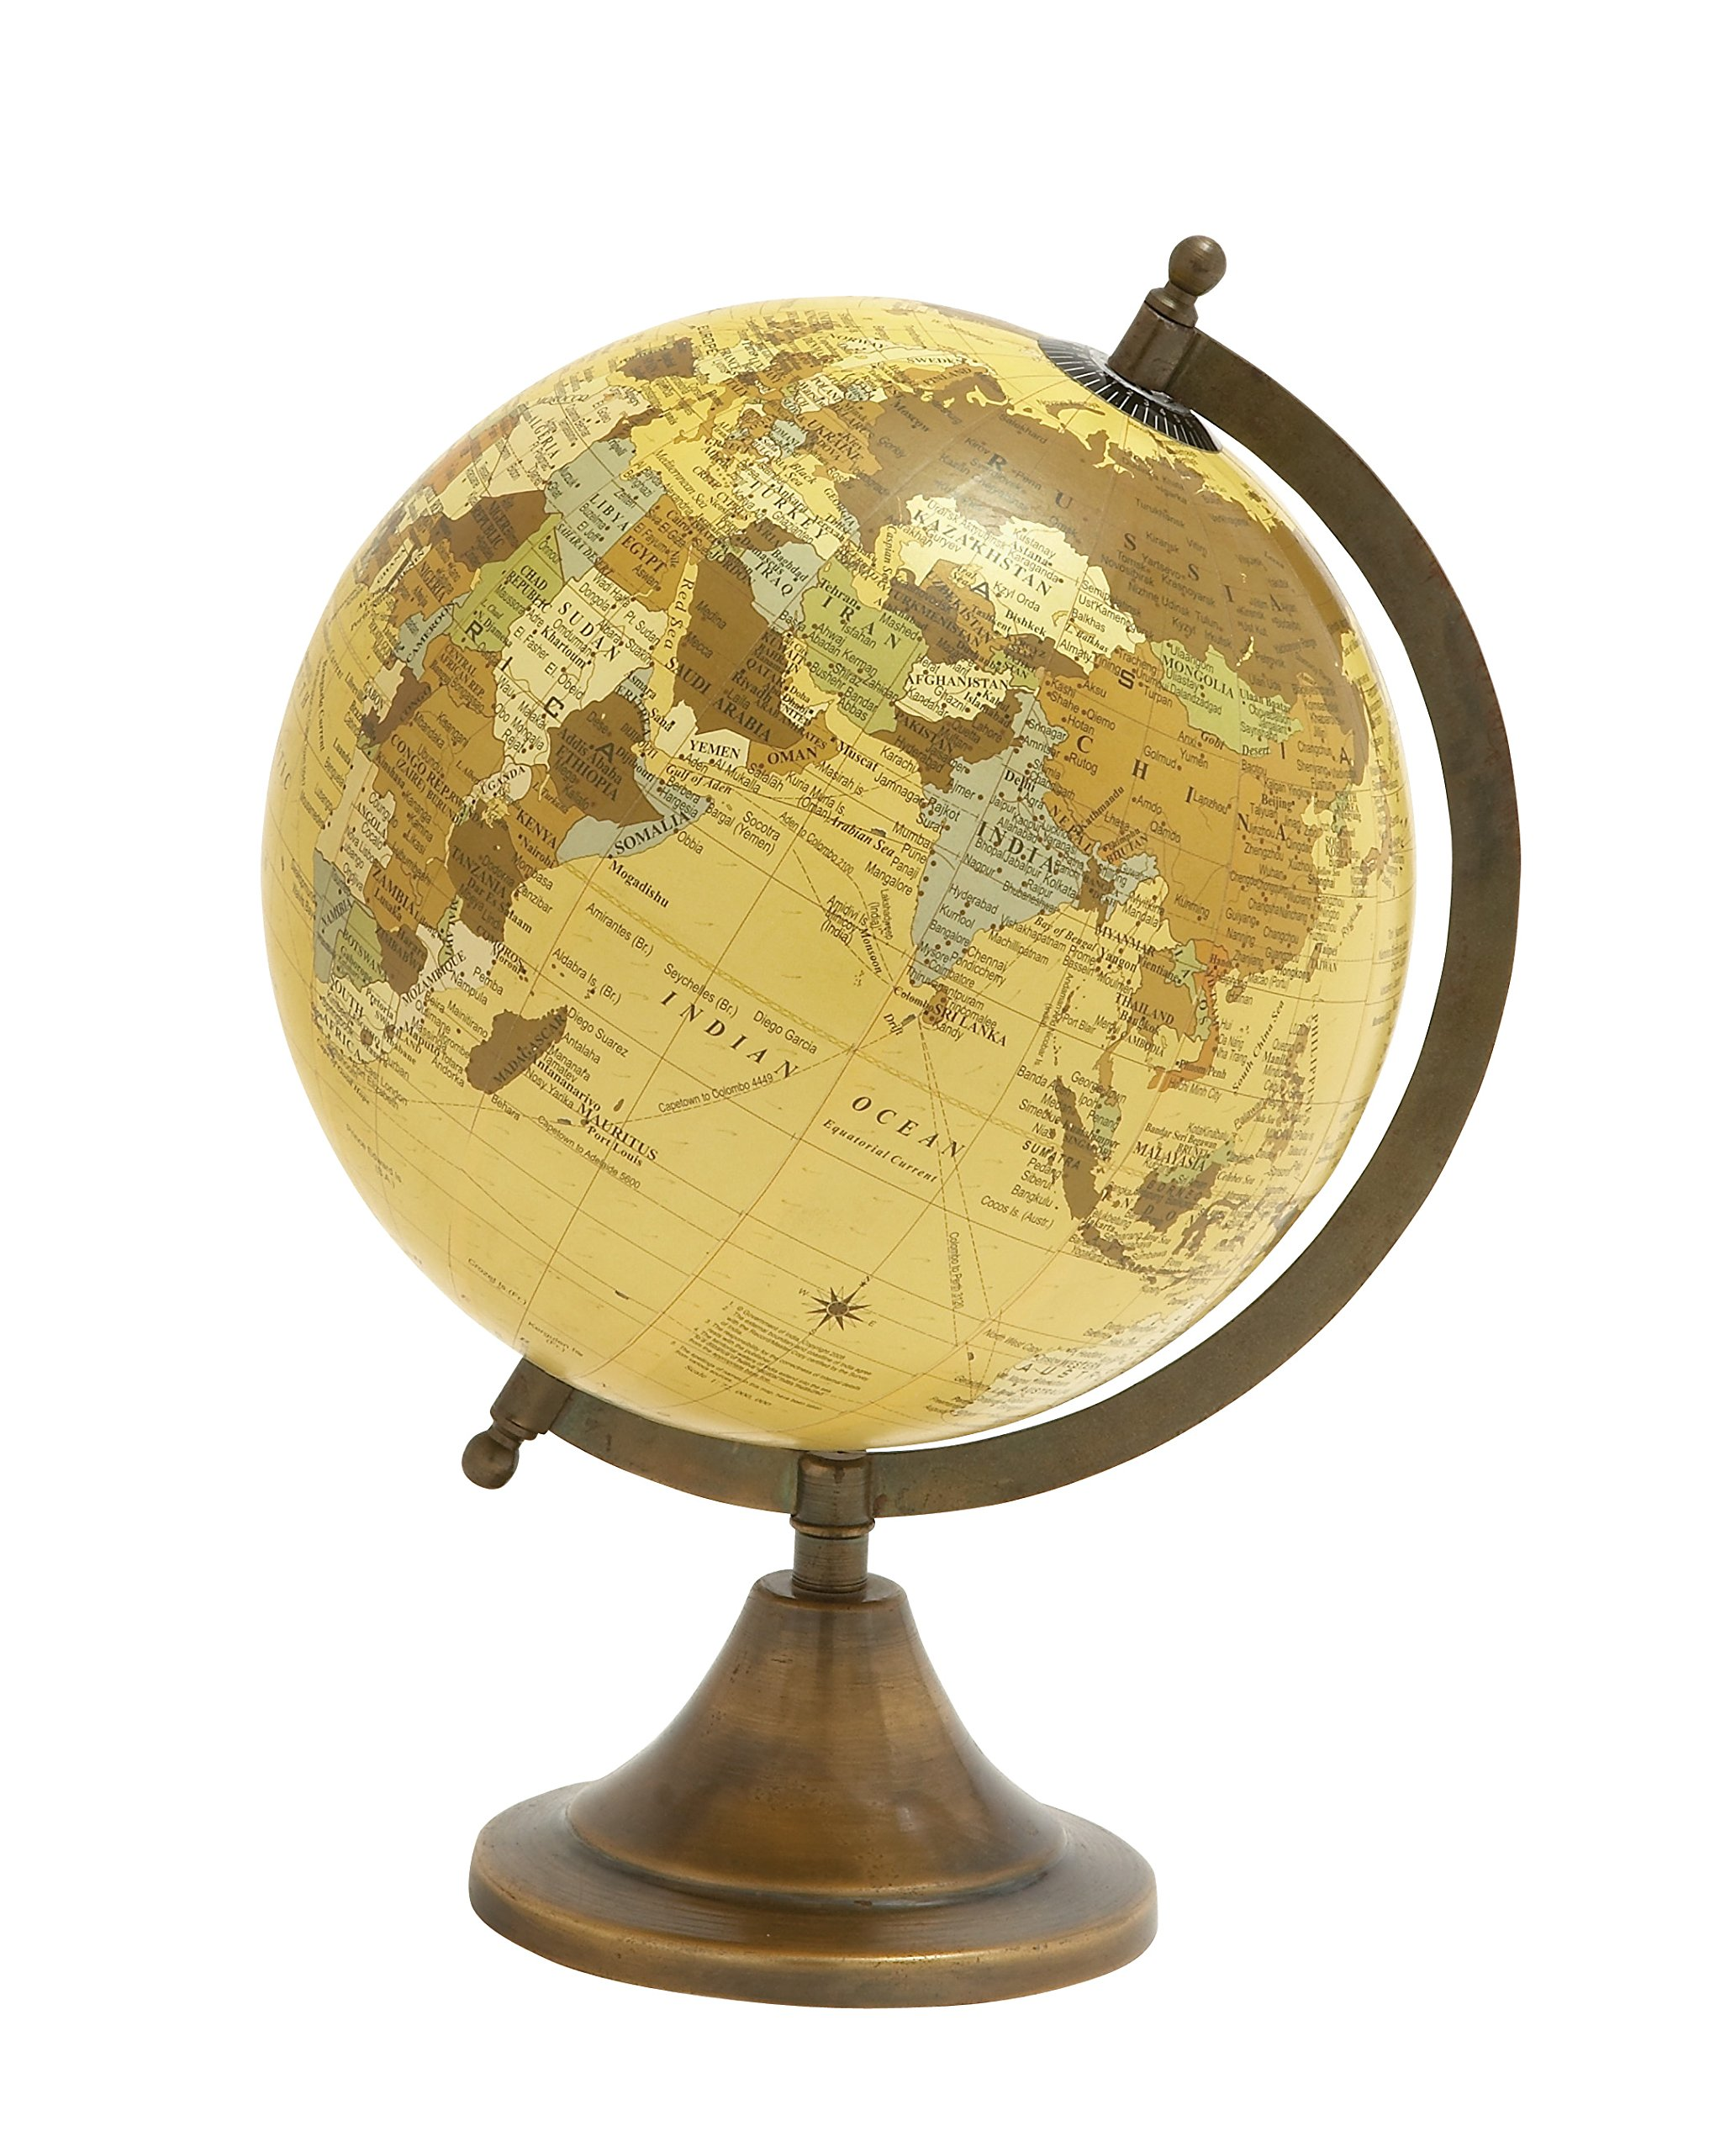 Deco 79 Traditional Plastic Globe with Metal Base, 12'' H x L, Multicolored Finish